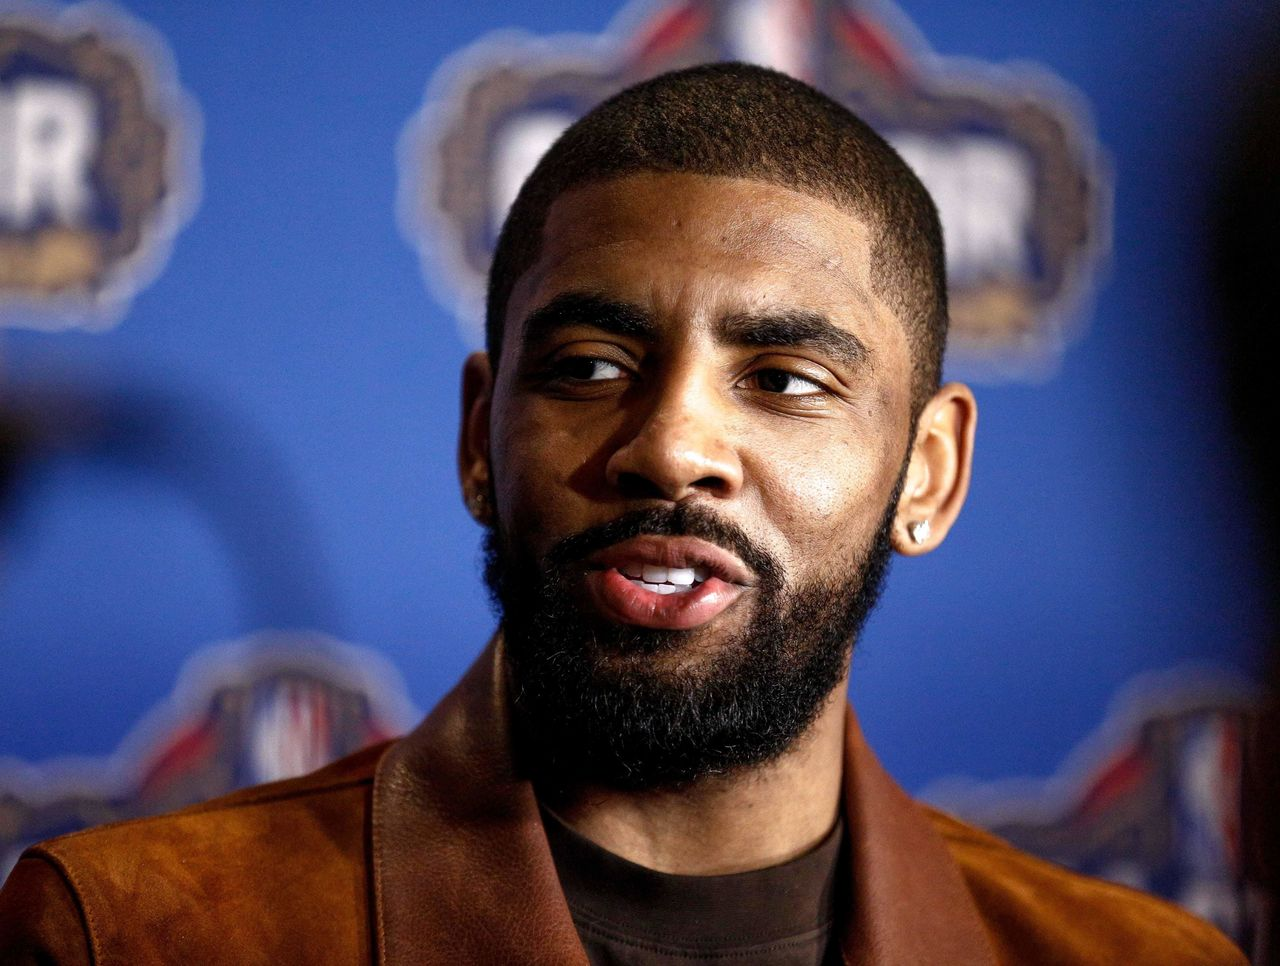 Cropped 2017 02 17t213841z 1292746317 nocid rtrmadp 3 nba all star press conference